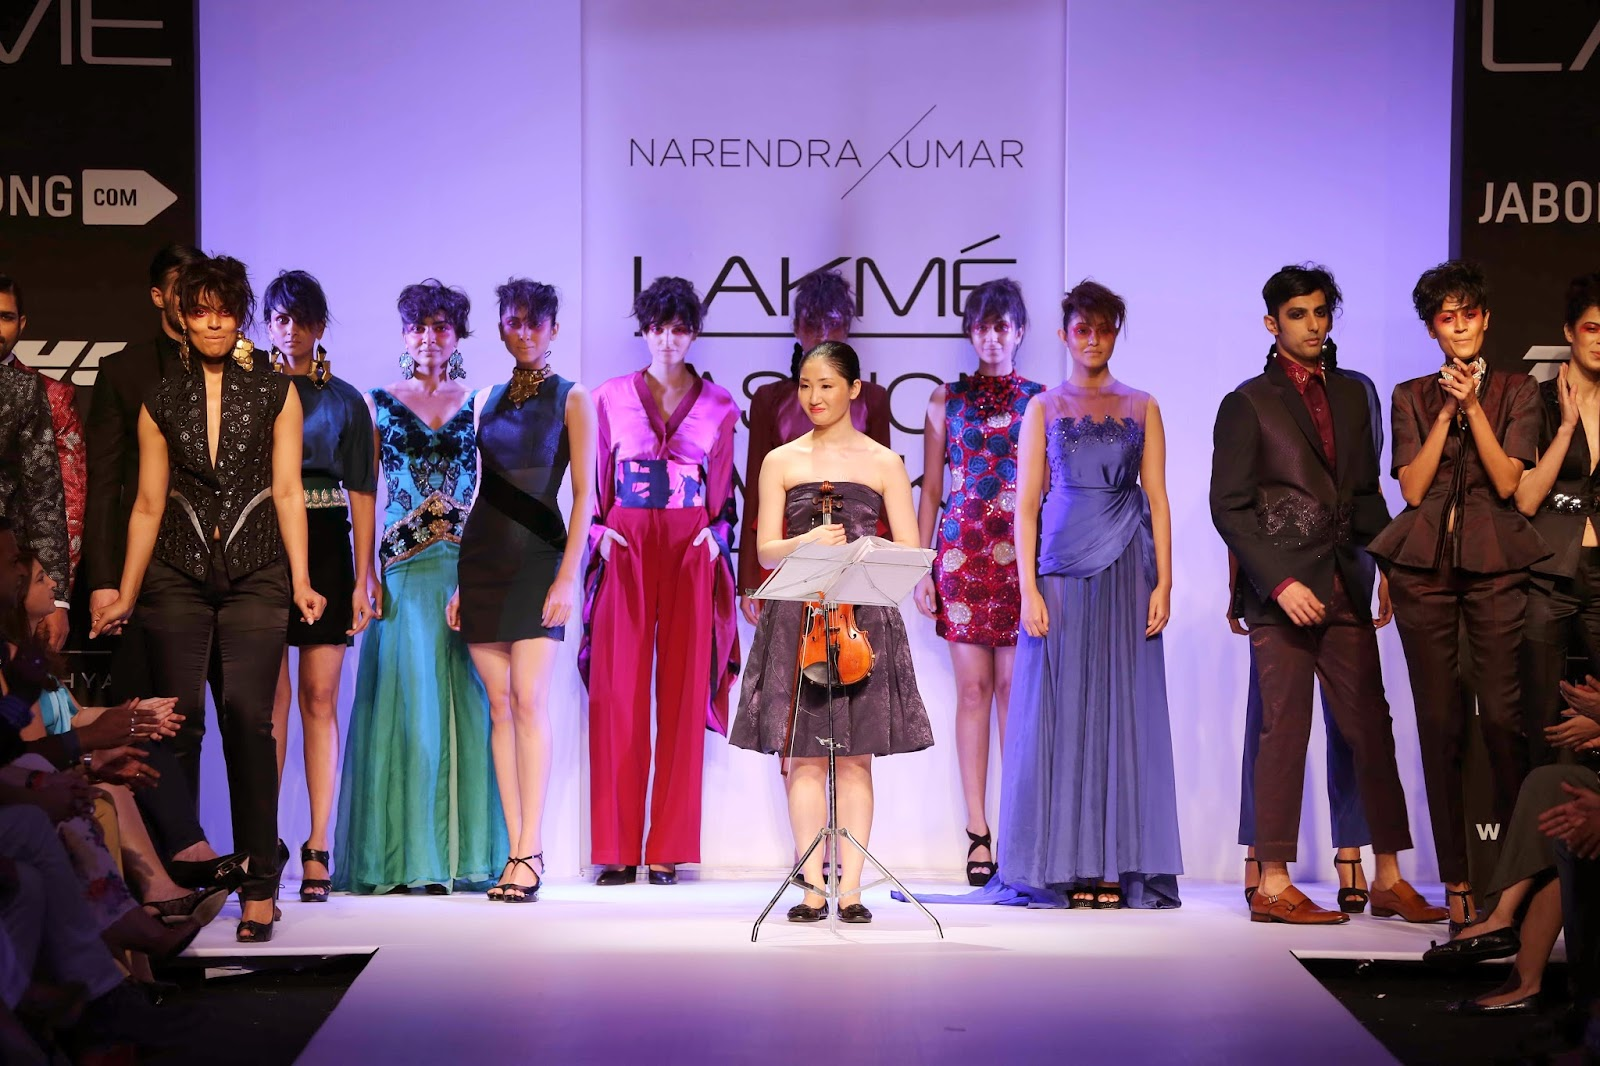 Opening the show with famed Japanese violinist, Mika Nishimura who has played for the Tel Aviv Symphony Orchestra under Zubin Mehta, the soulful music specially complied by her was the perfect accompaniment to the creations on the ramp.